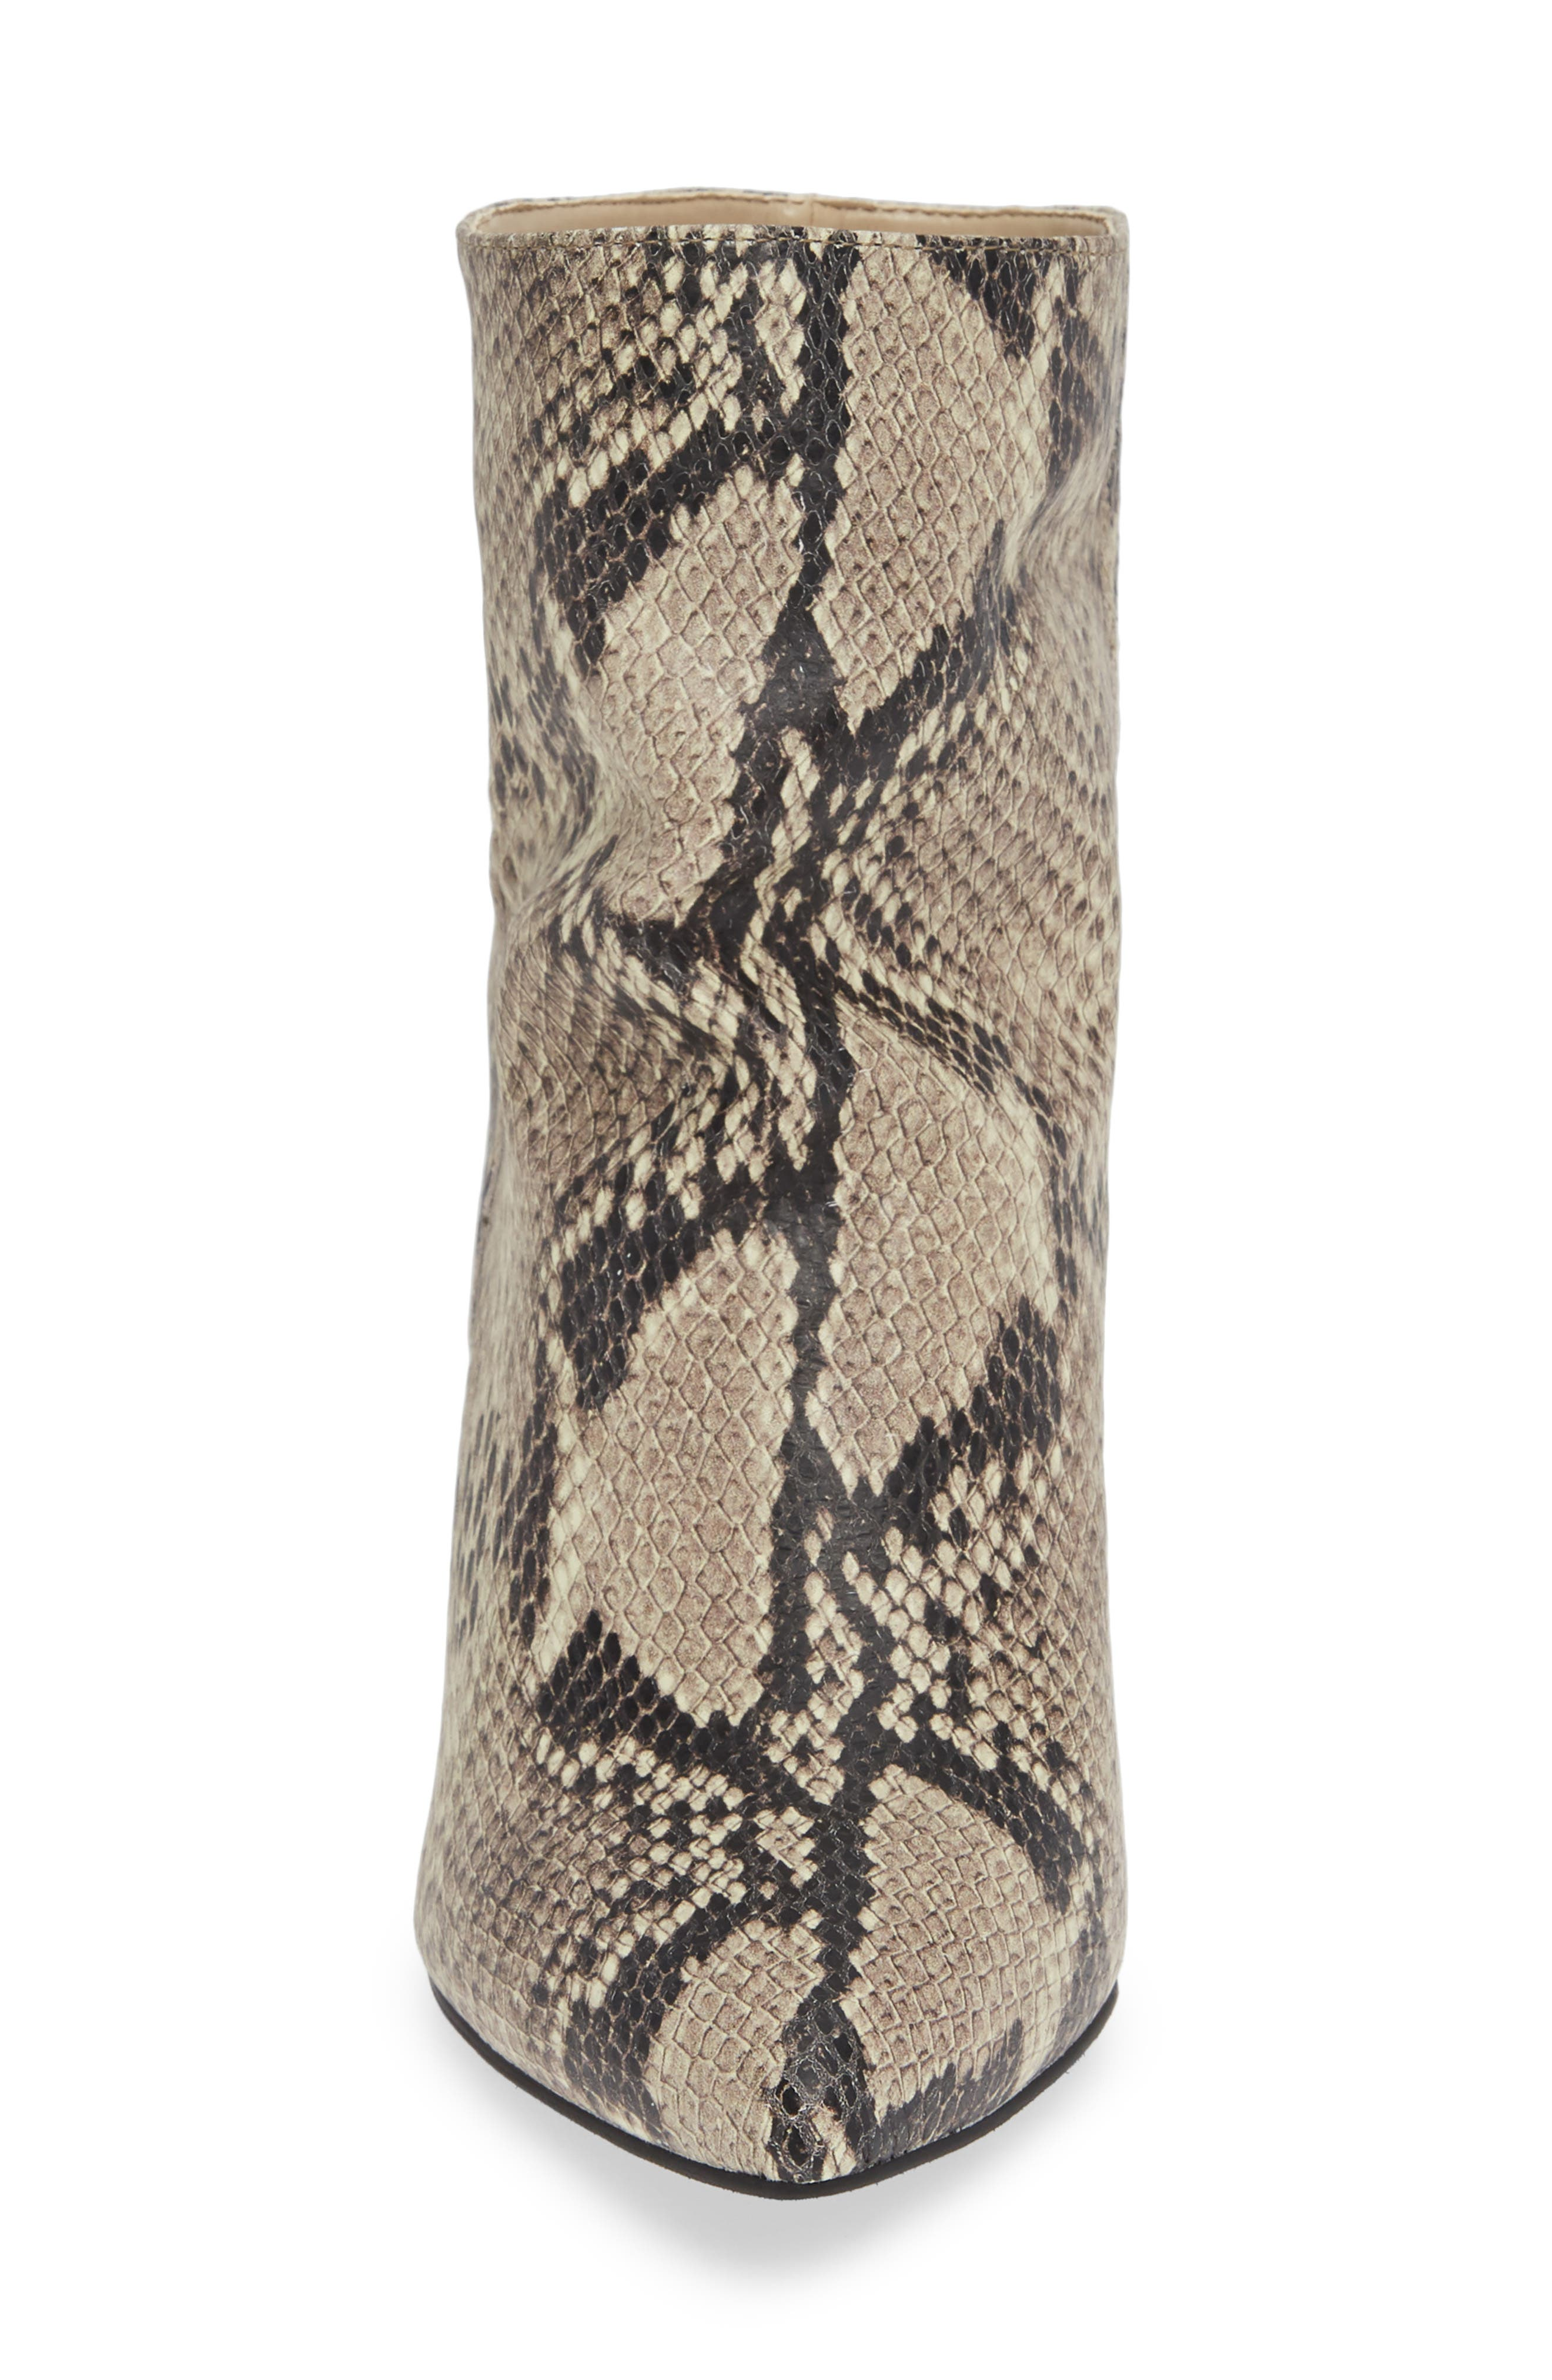 Scope Bootie,                             Alternate thumbnail 4, color,                             PRINTED NATURAL SNAKE LEATHER